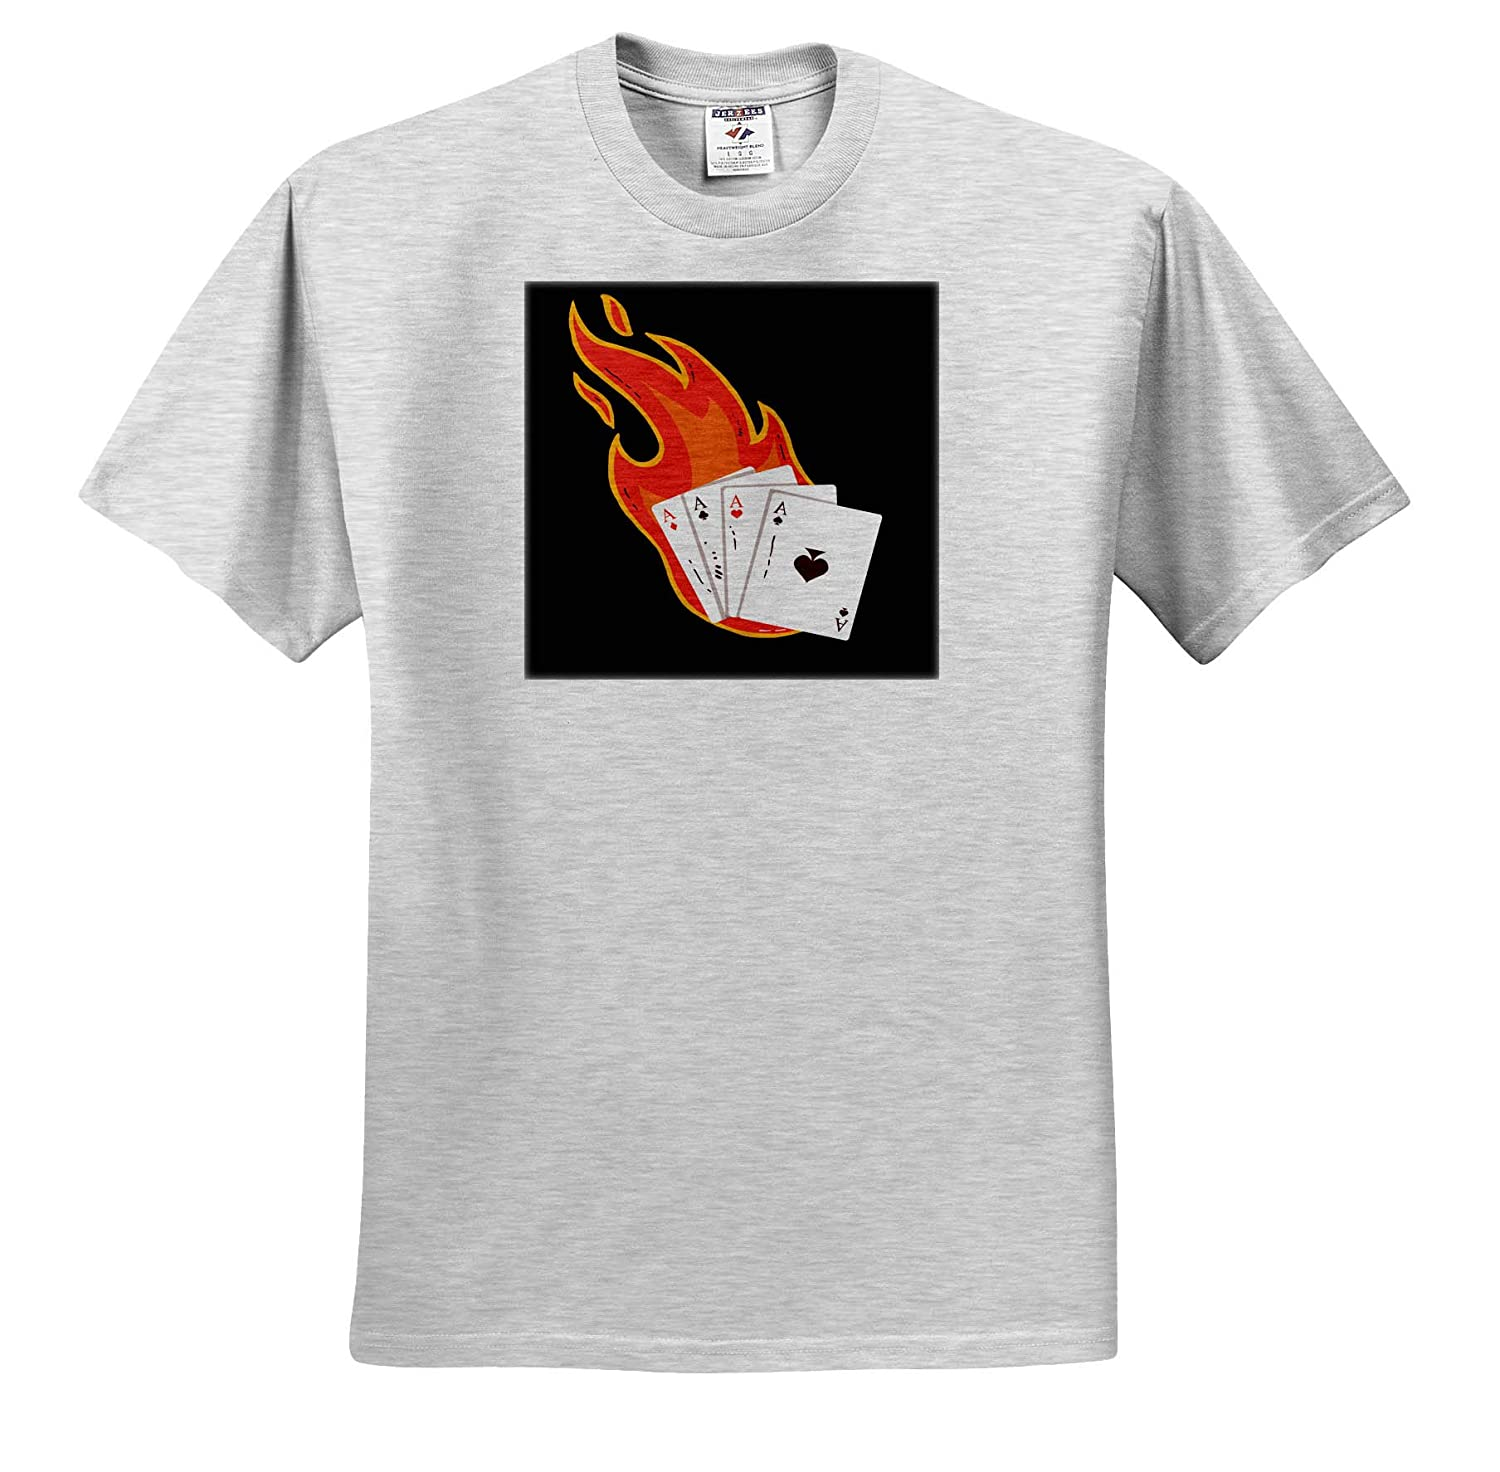 Adult T-Shirt XL 3dRose Sven Herkenrath Sport ts/_316078 Poker Cards for Casino with Fire Play